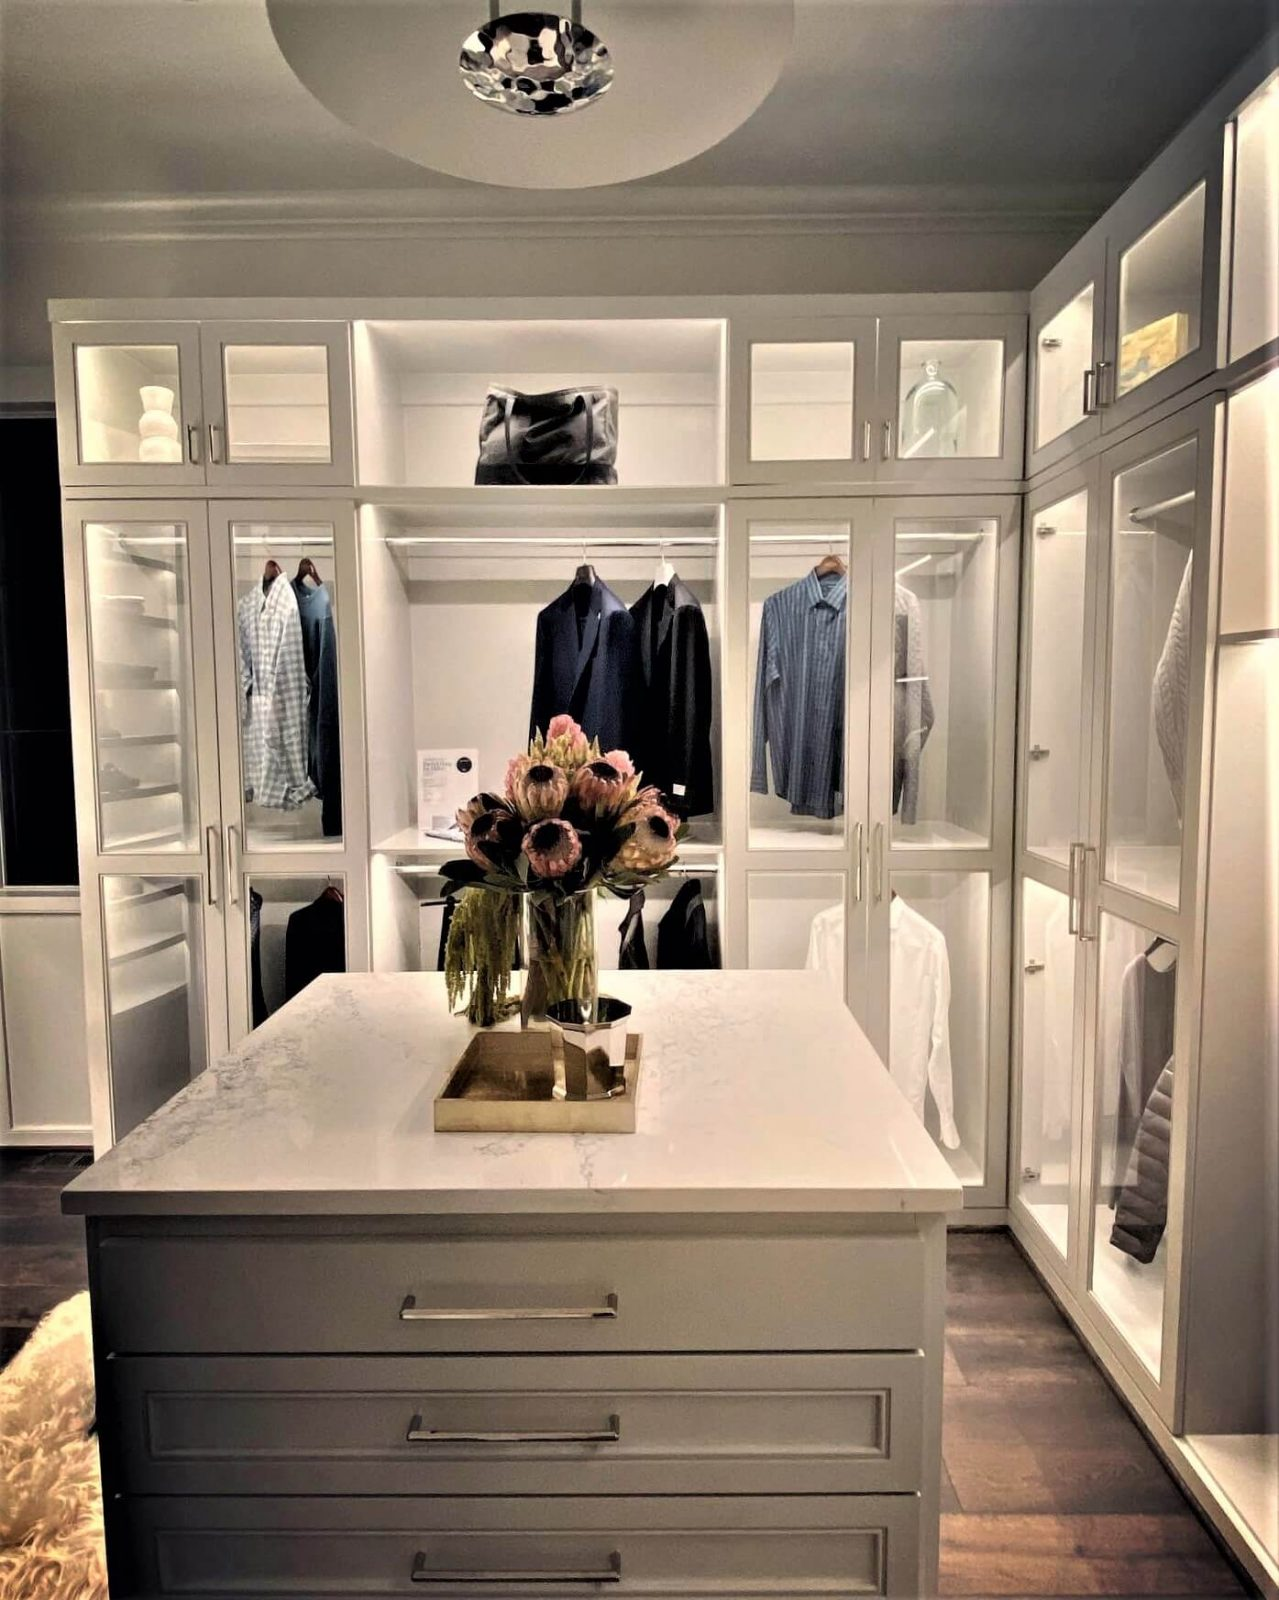 Contract with The Closet Company in Nashville TN if your men like to organize